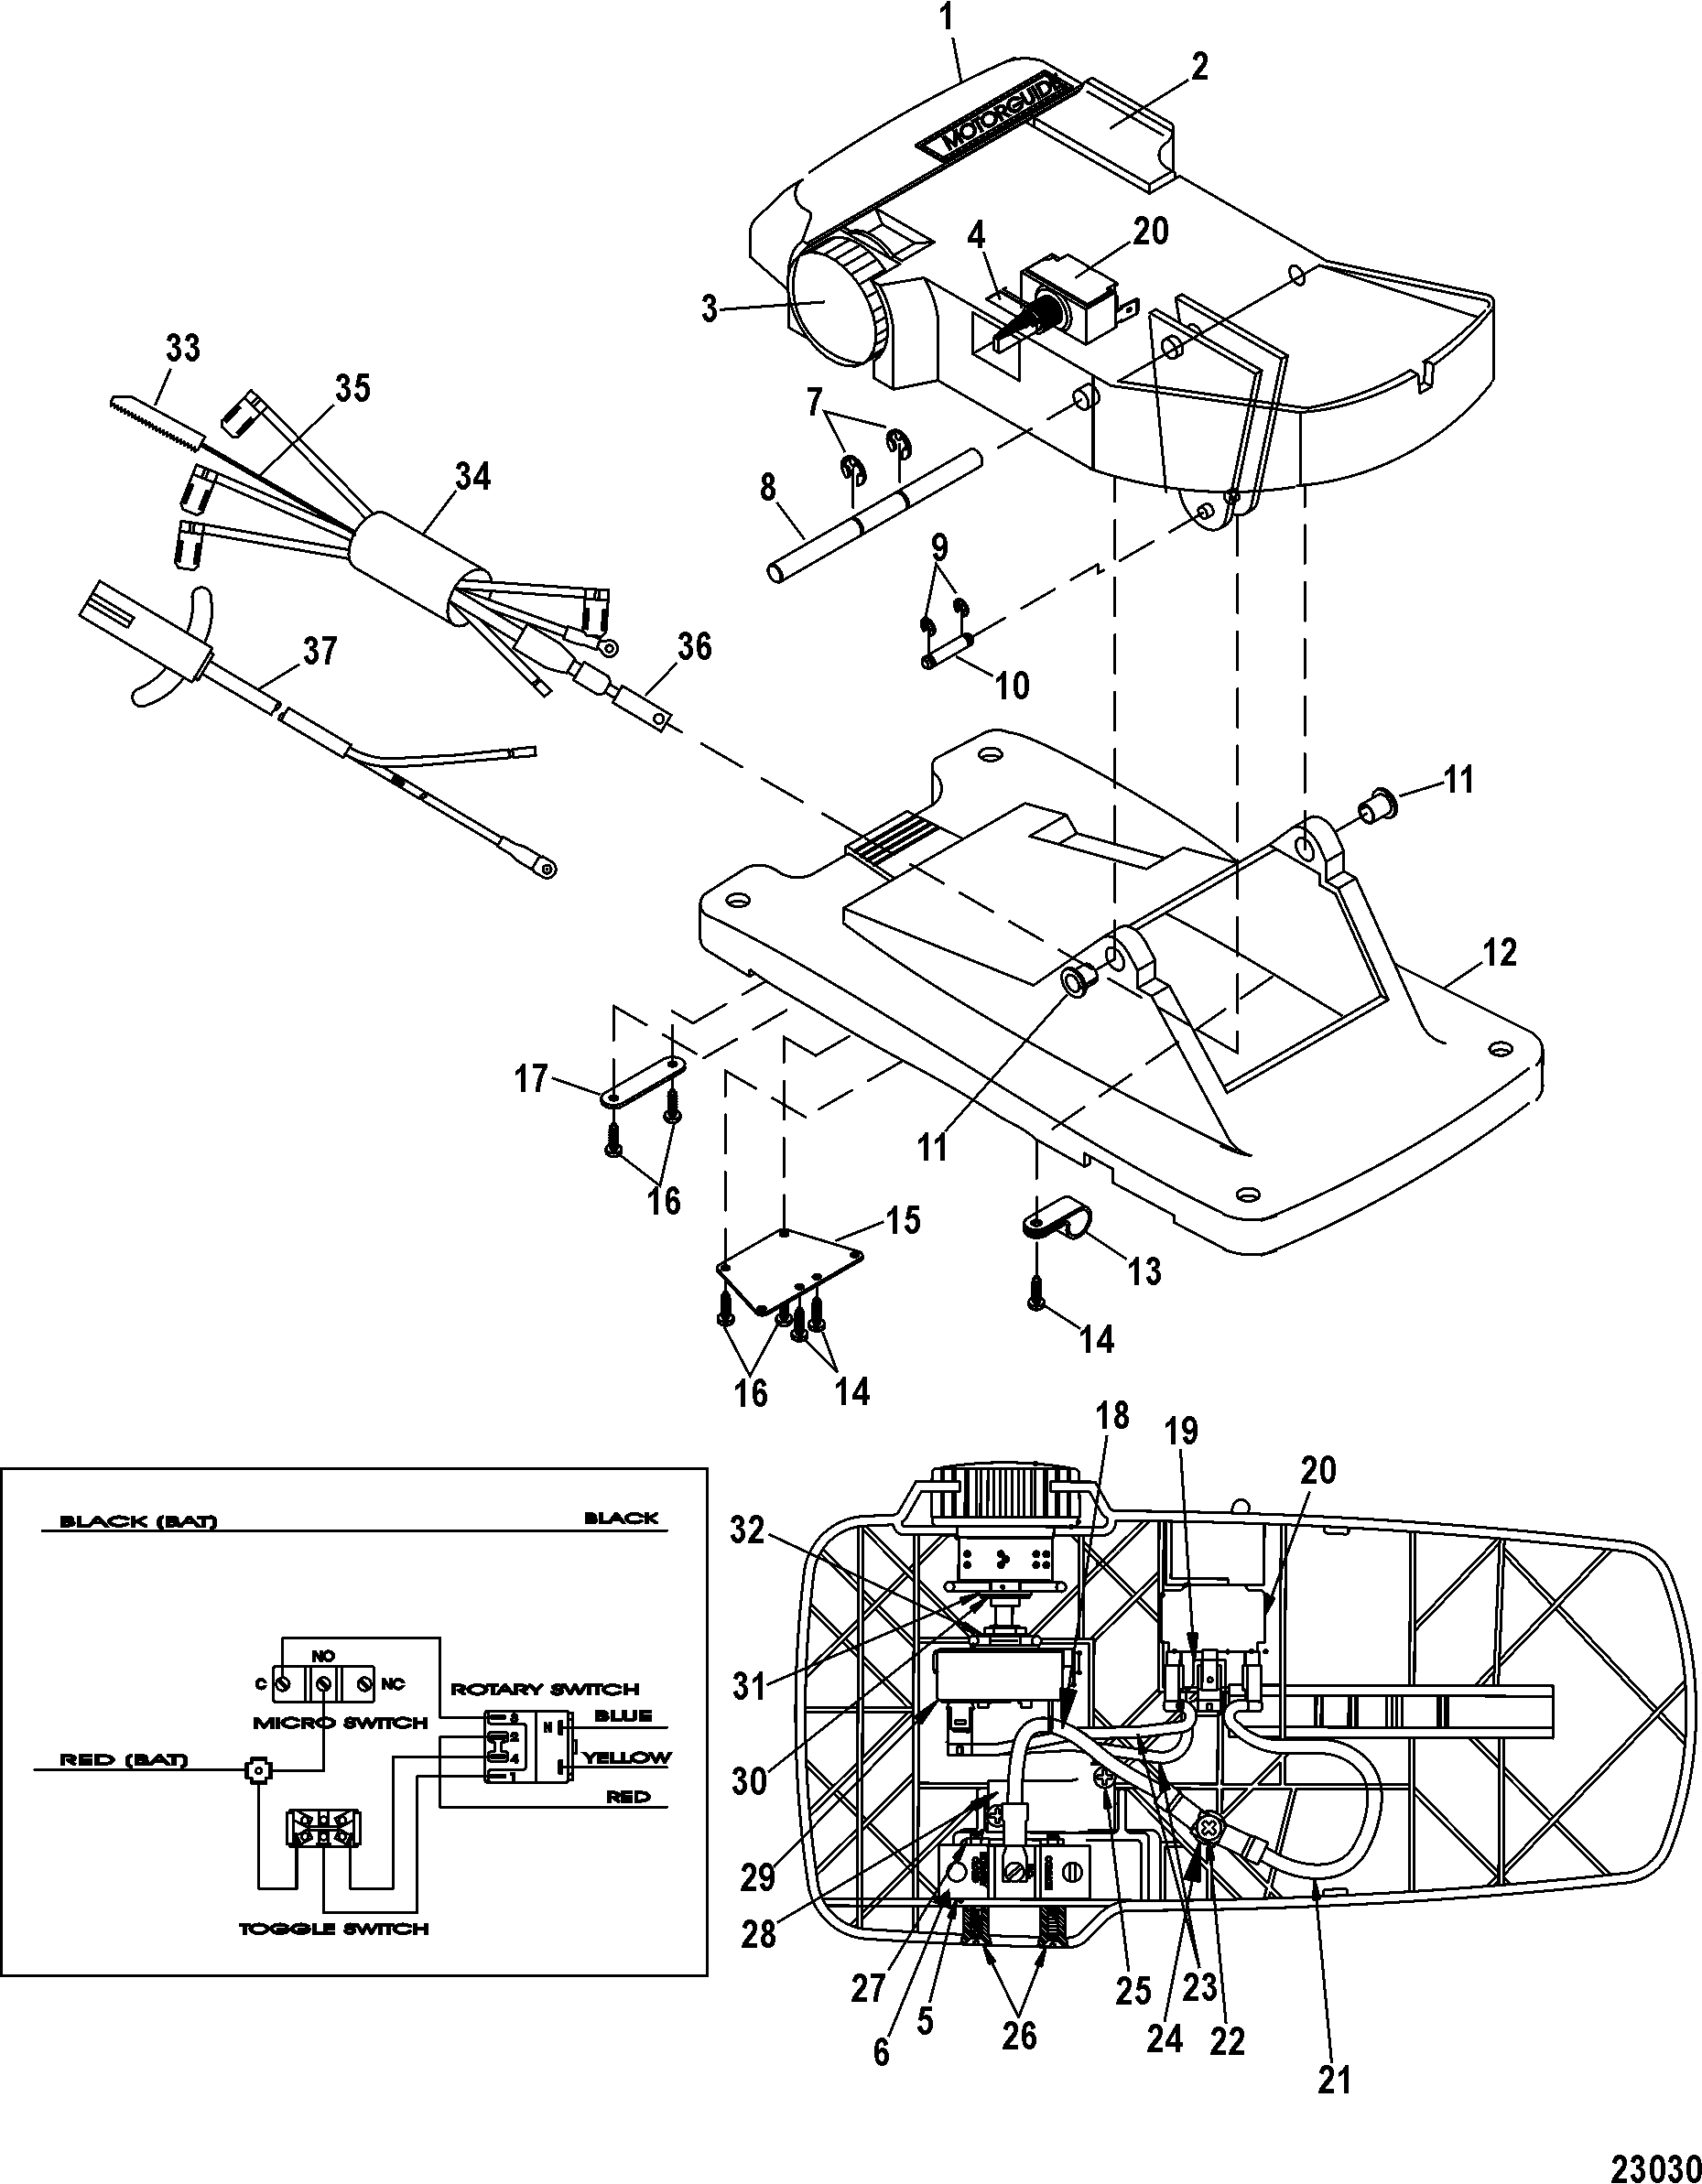 hight resolution of wiring diagram motorguide foot pedal free download wiring diagram post motorguide trolling motor foot pedal wiring